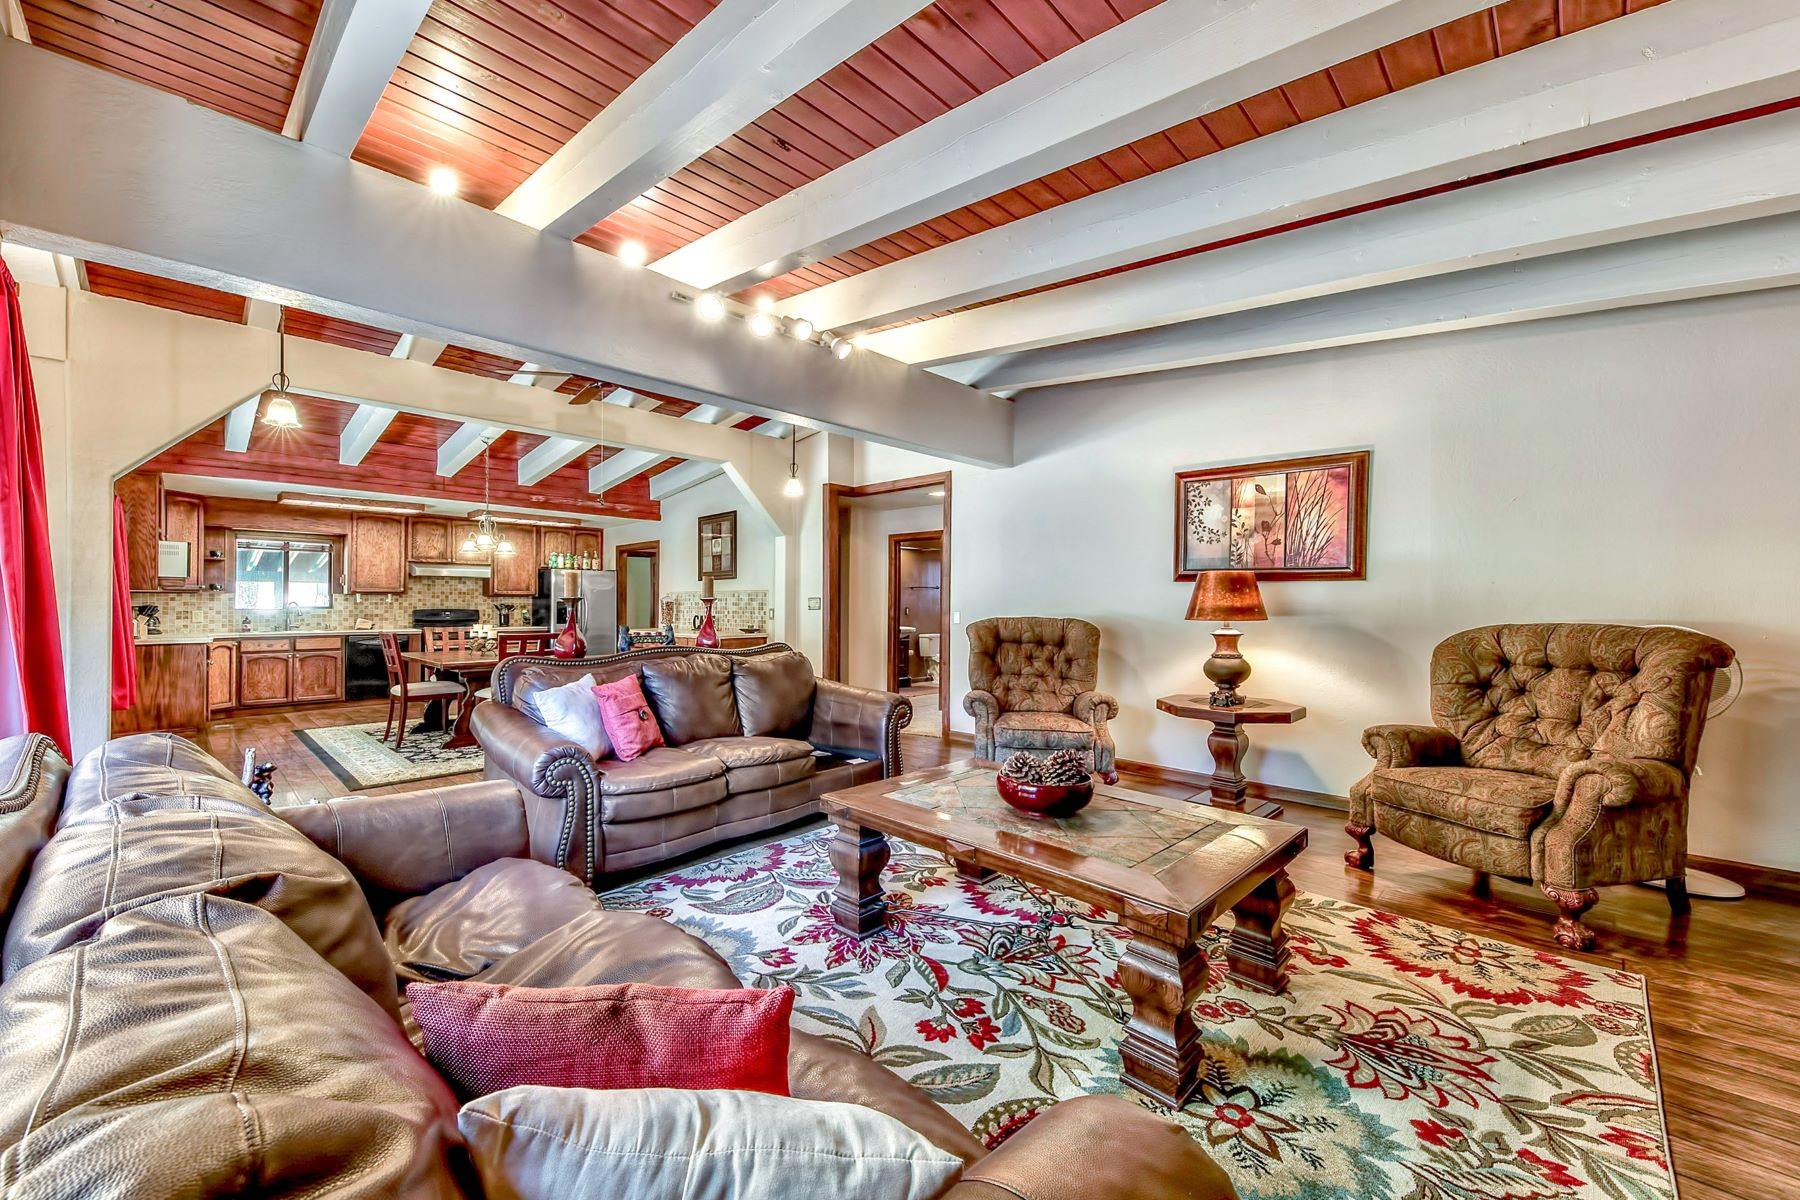 Additional photo for property listing at 817 Hazel Drive, South Lake Tahoe, CA 96150 817 Hazel Drive South Lake Tahoe, California 96150 United States